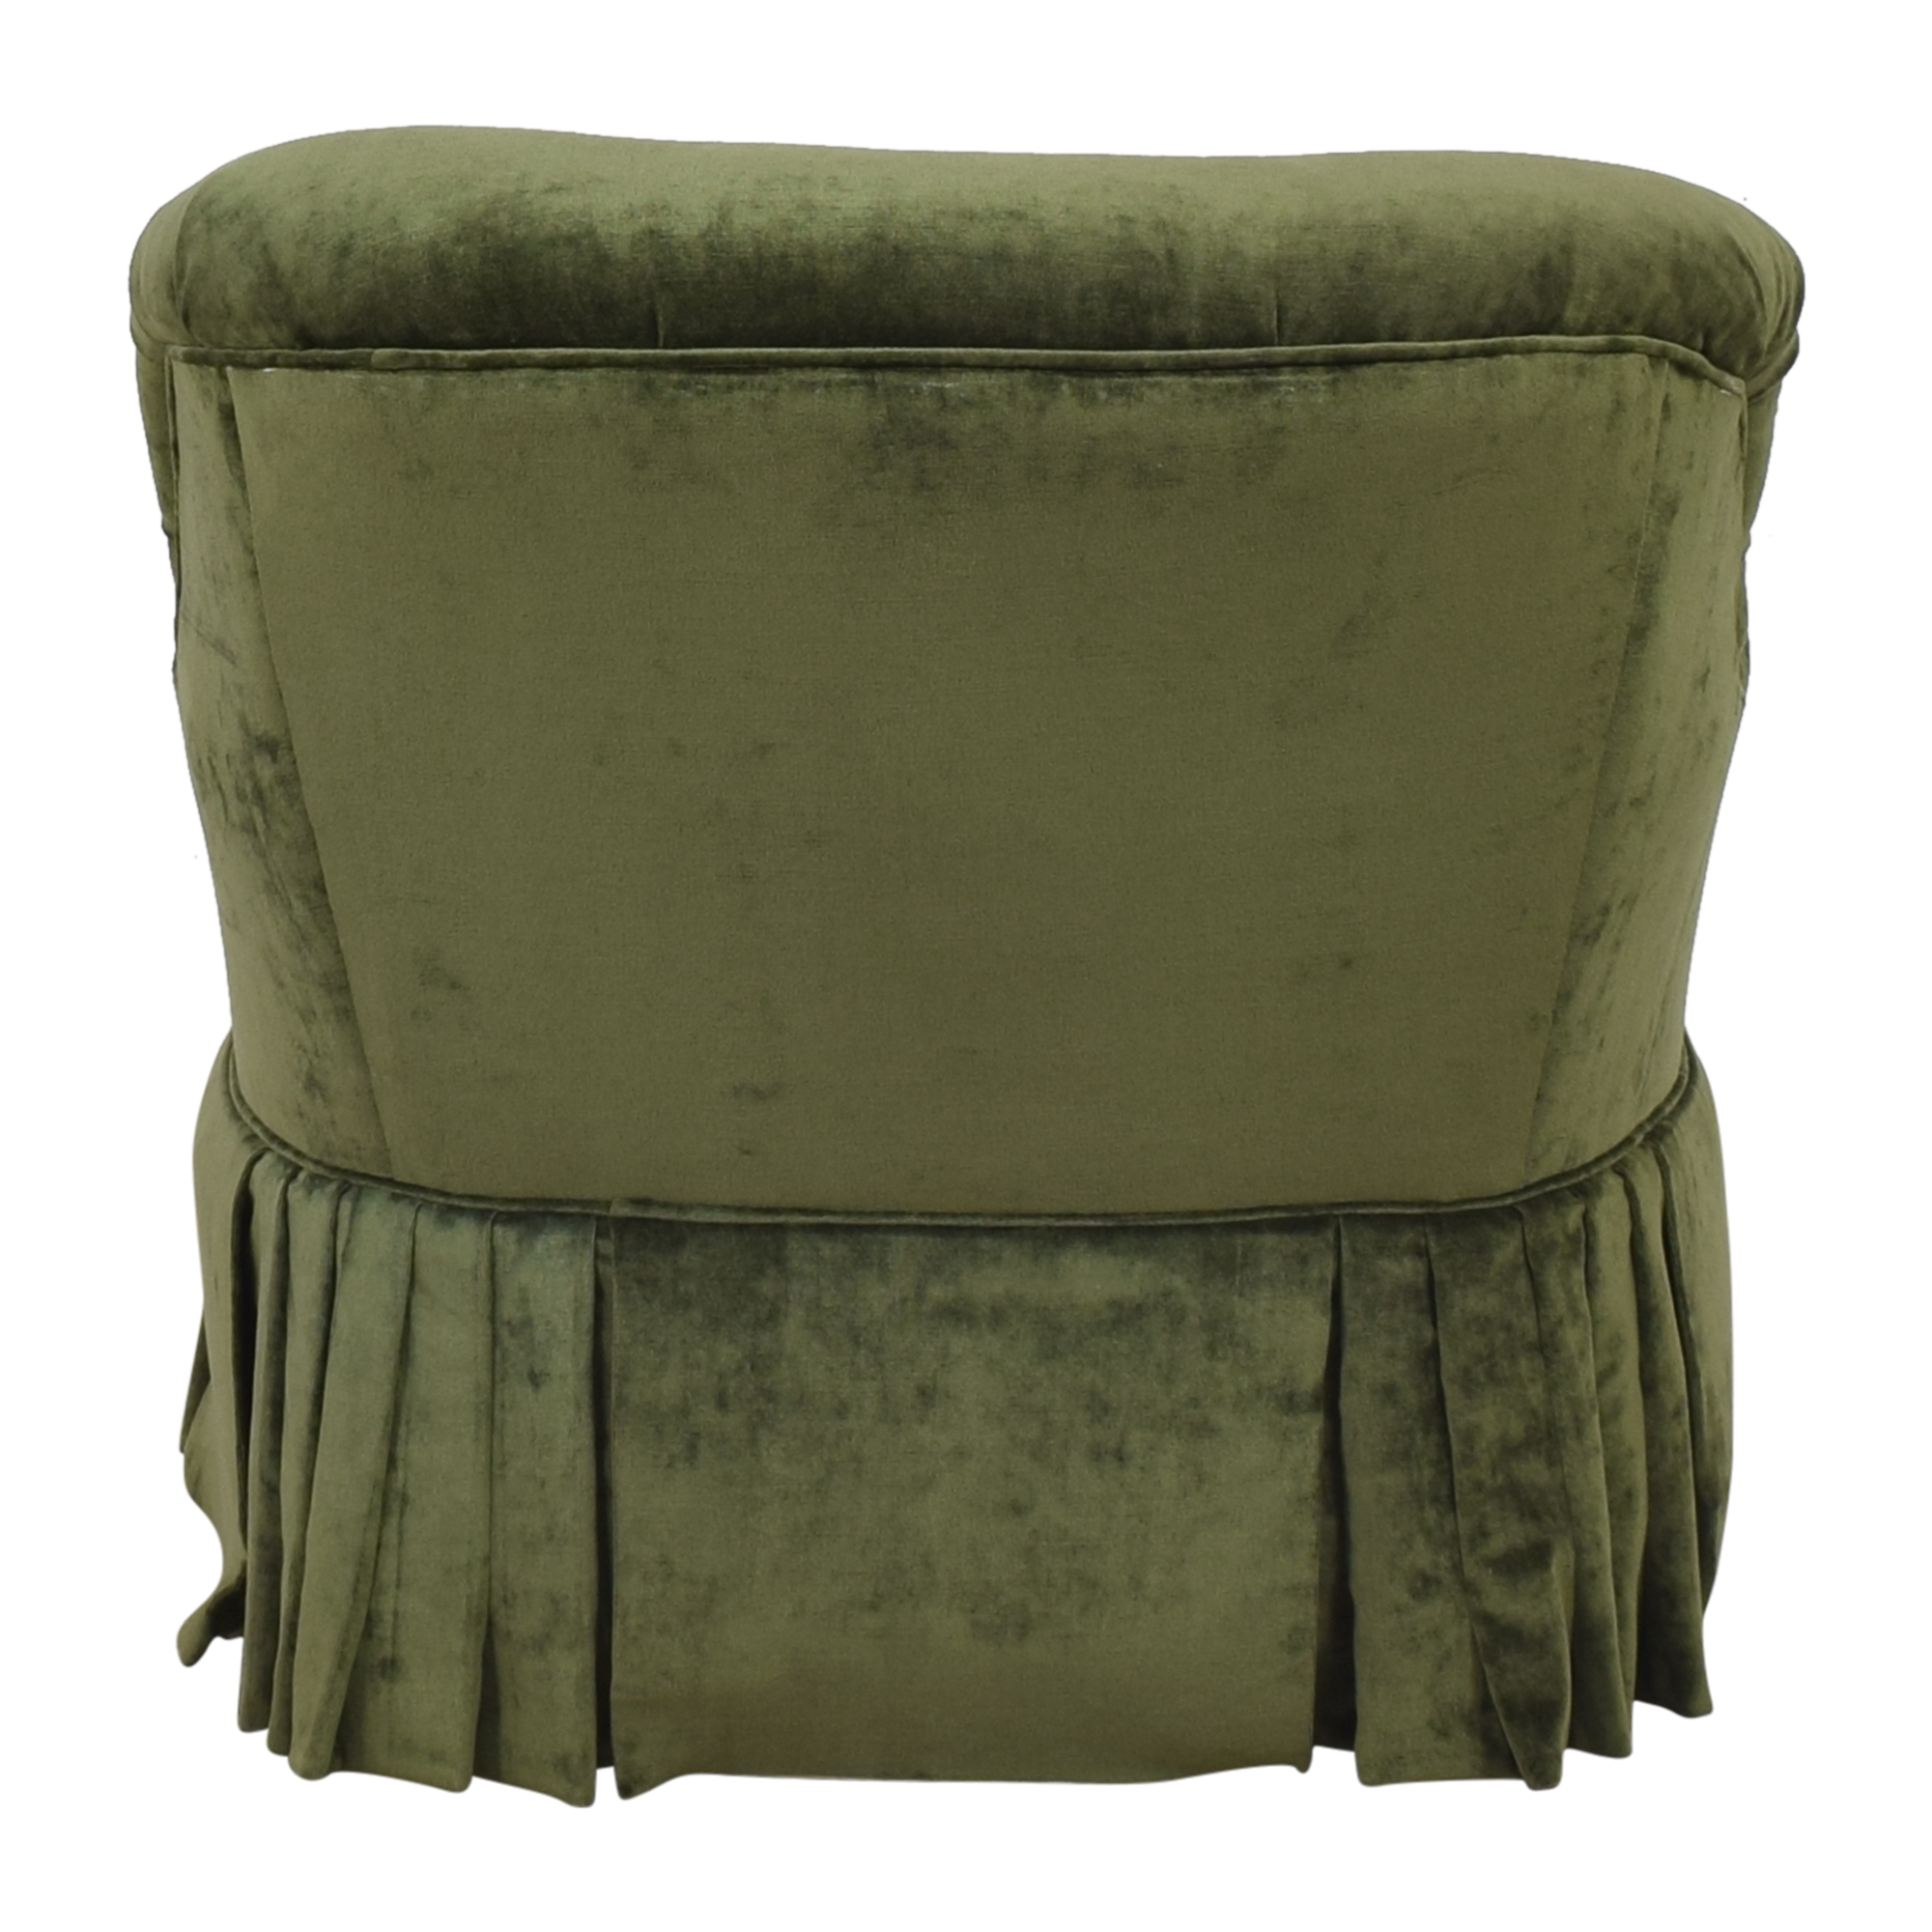 Calico Calico Corners Brandy Wine Design Accent Chair coupon